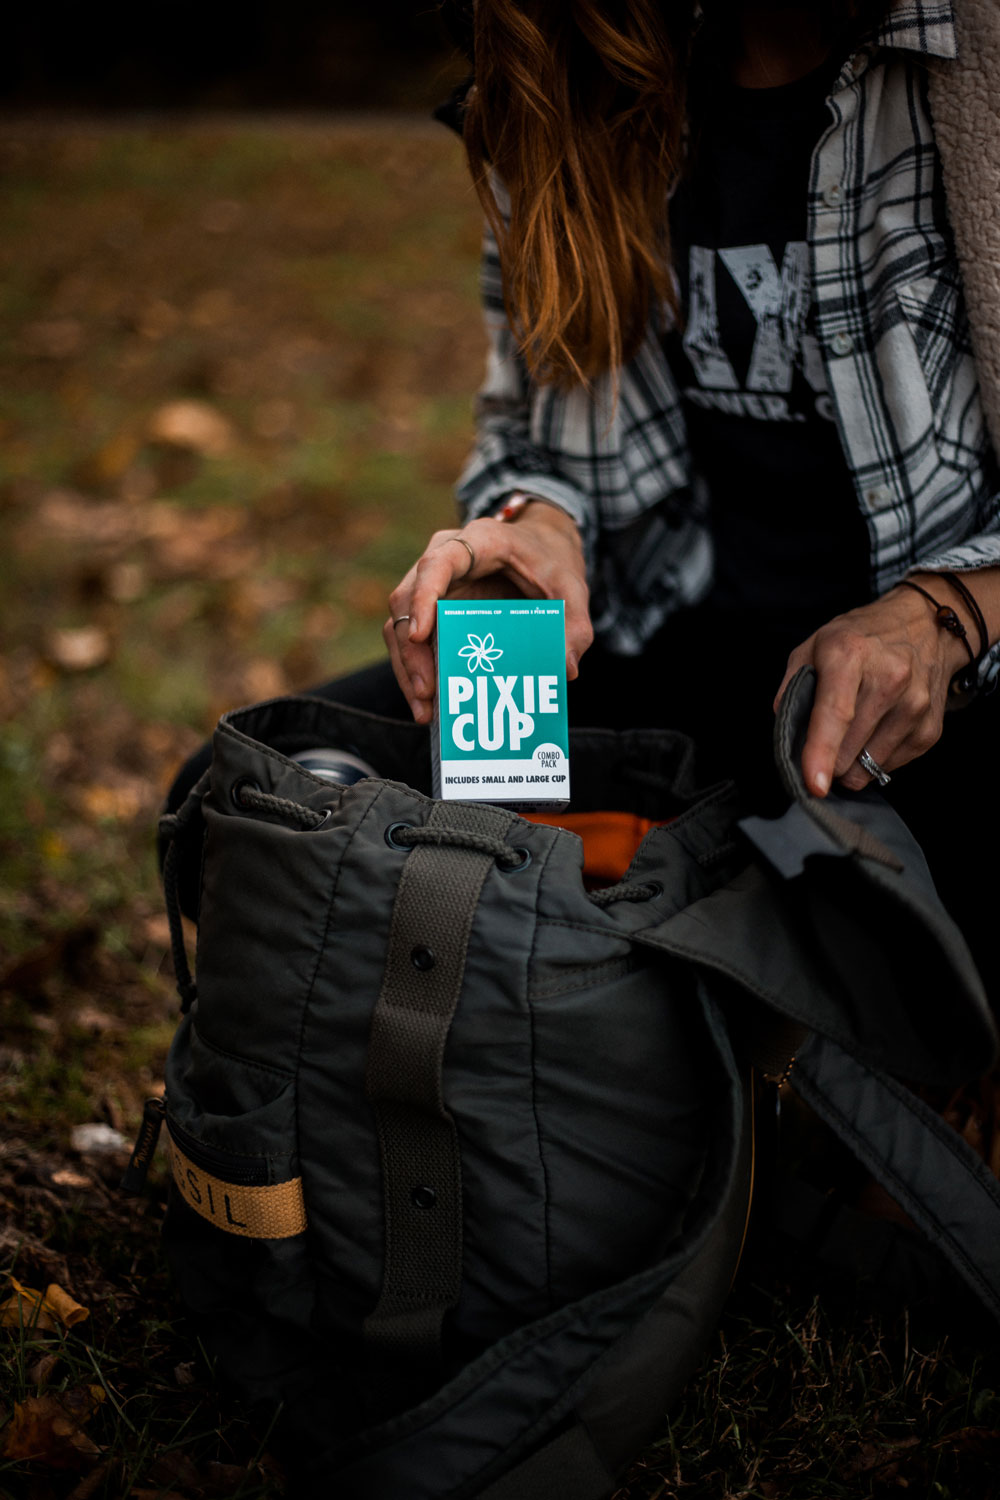 Pixie menstrual cup in a camping backpack